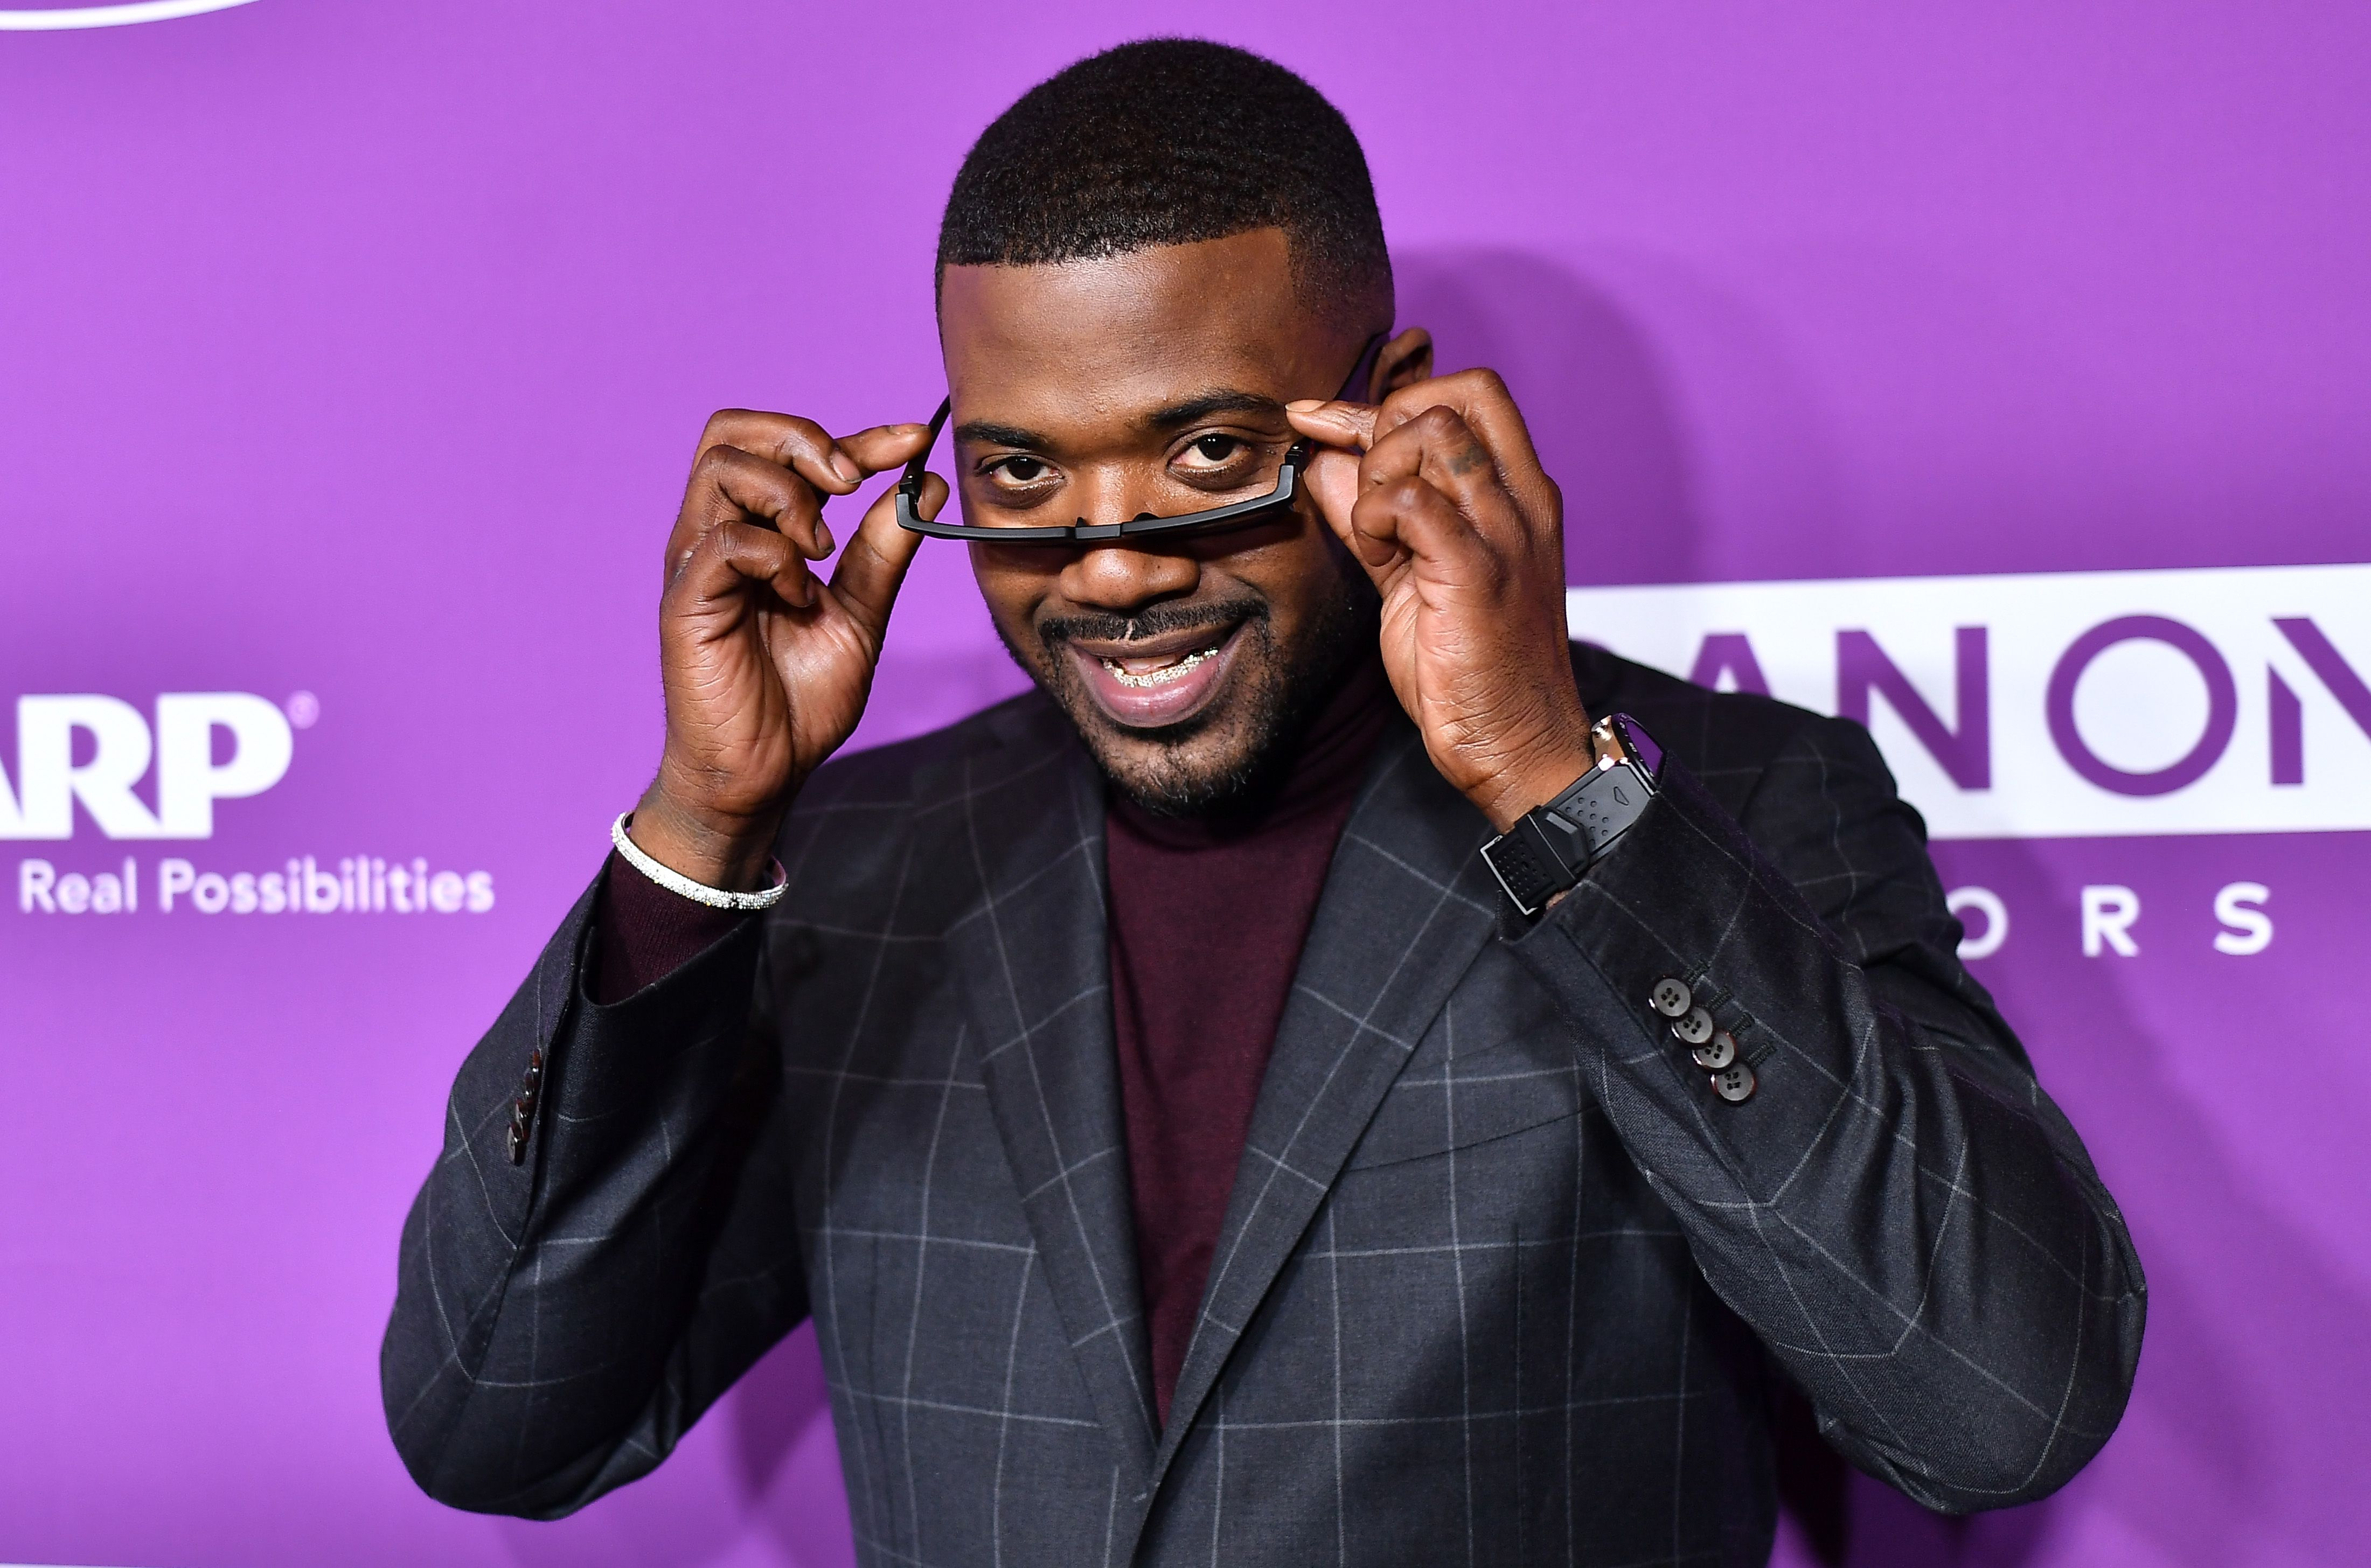 Ray J Dared Interviewer to Step on His Glasses Which He Claimed Were Unbreakable & the Awkward Moment Went Viral